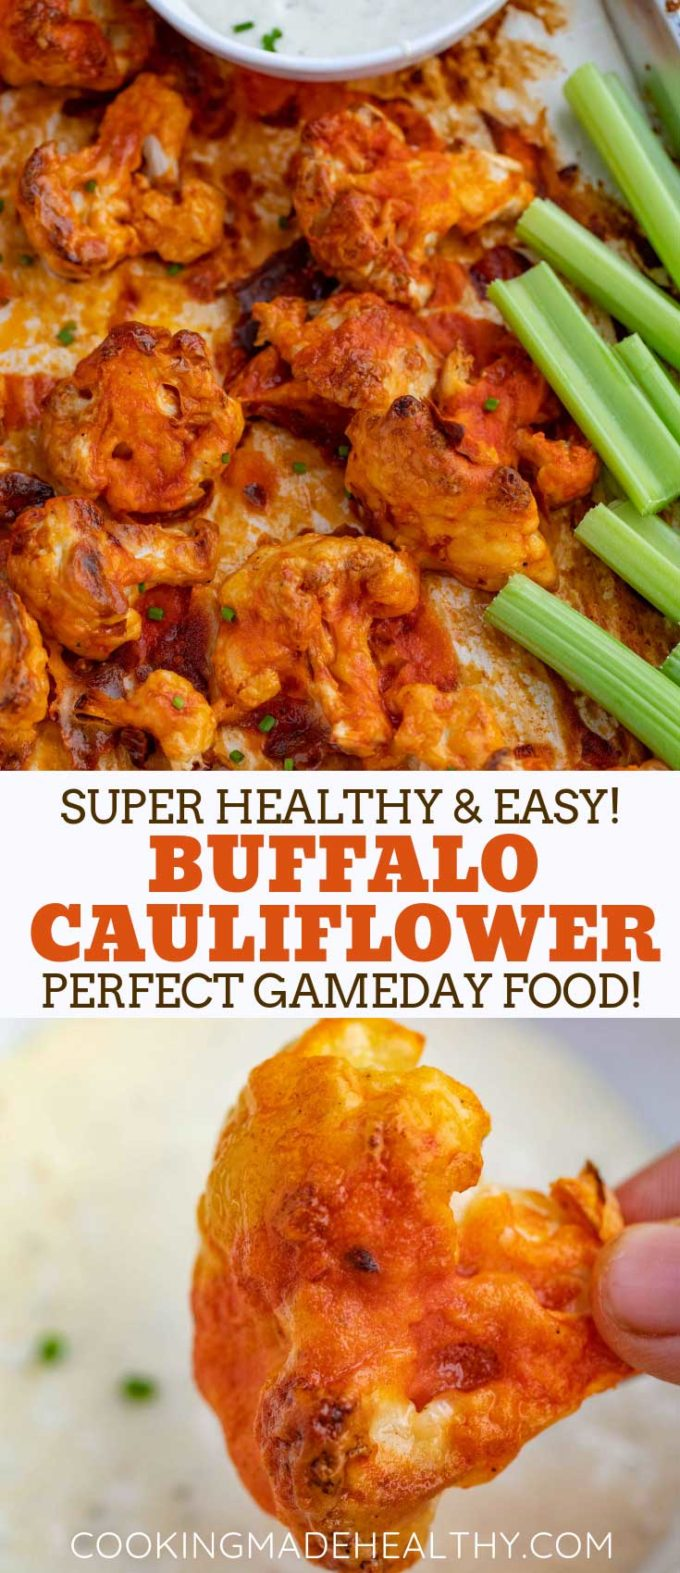 Buffalo Cauliflower Long pinterest pin